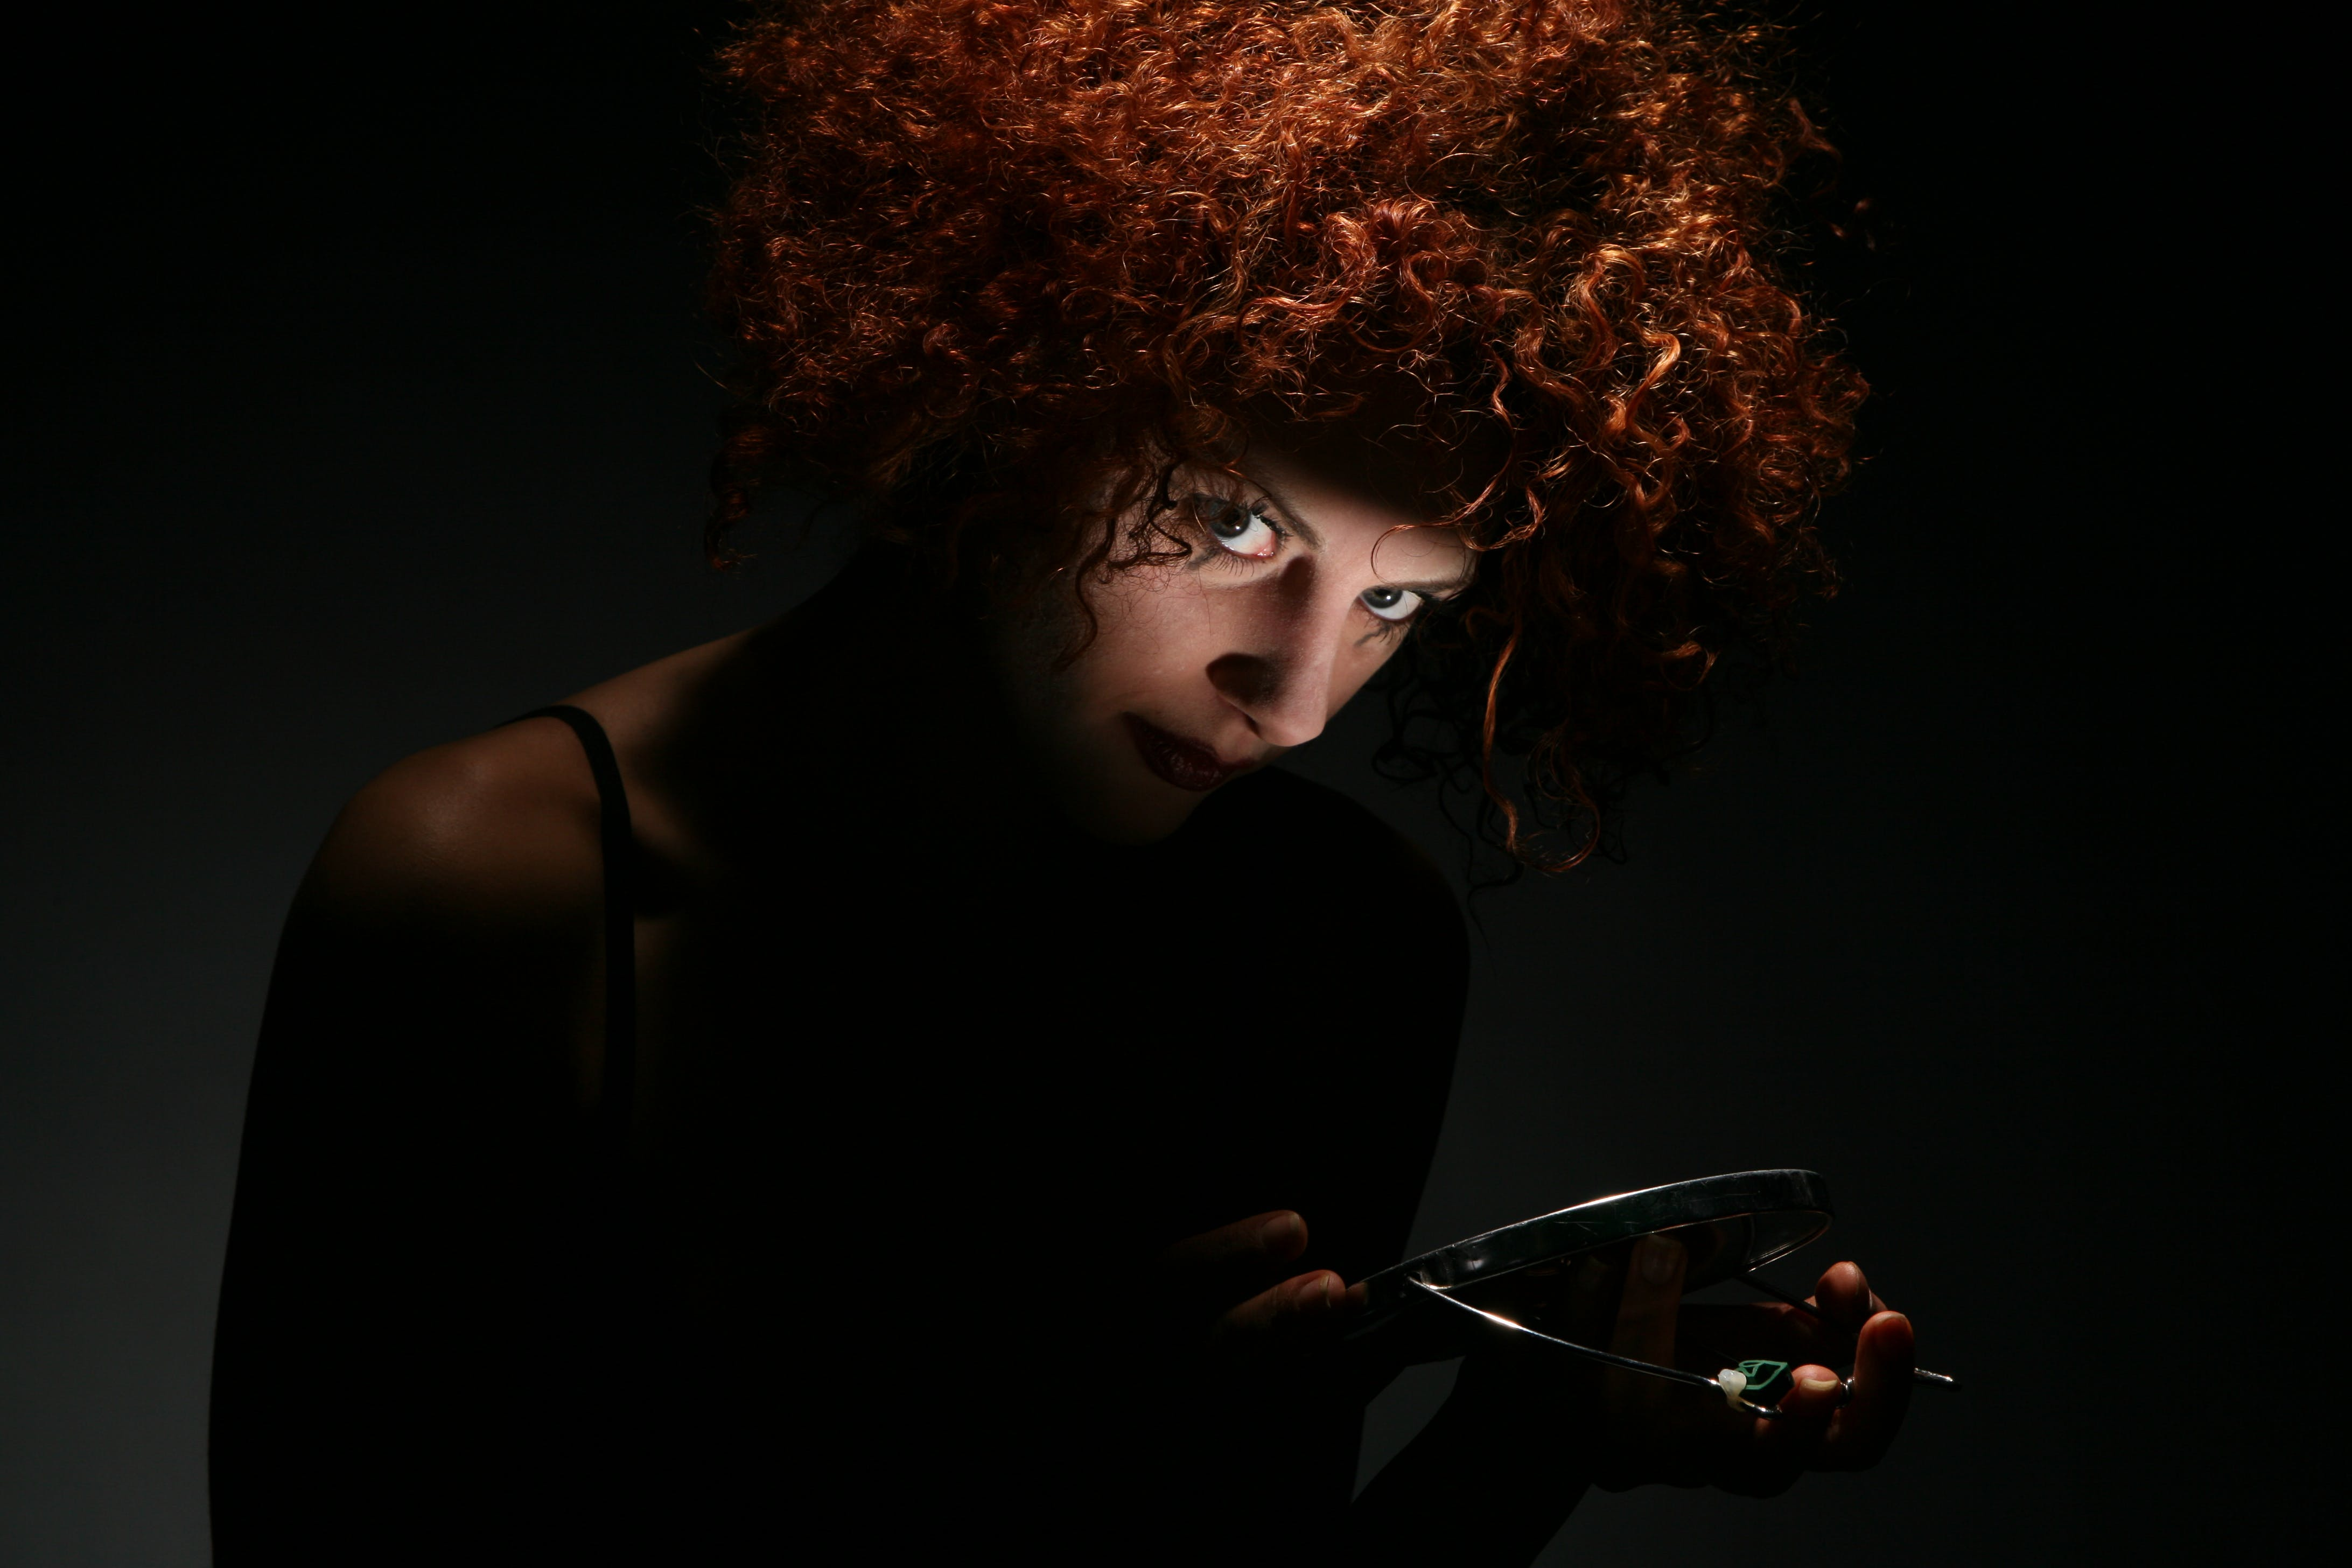 Red Haired Woman in Dark Room